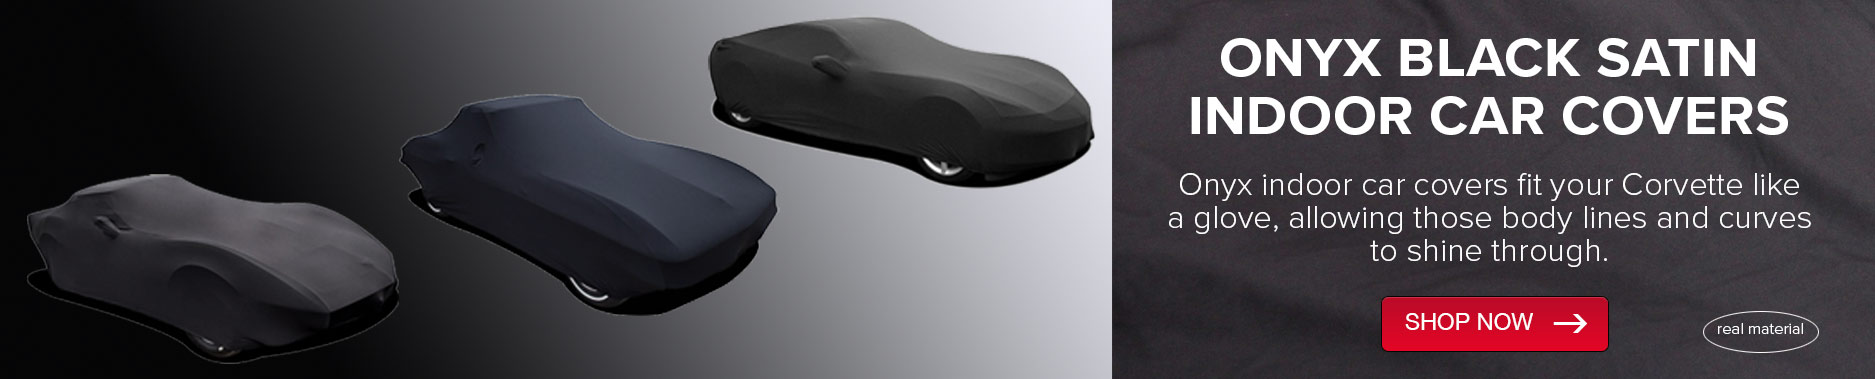 Onyx Black Satin Indoor Car Cover